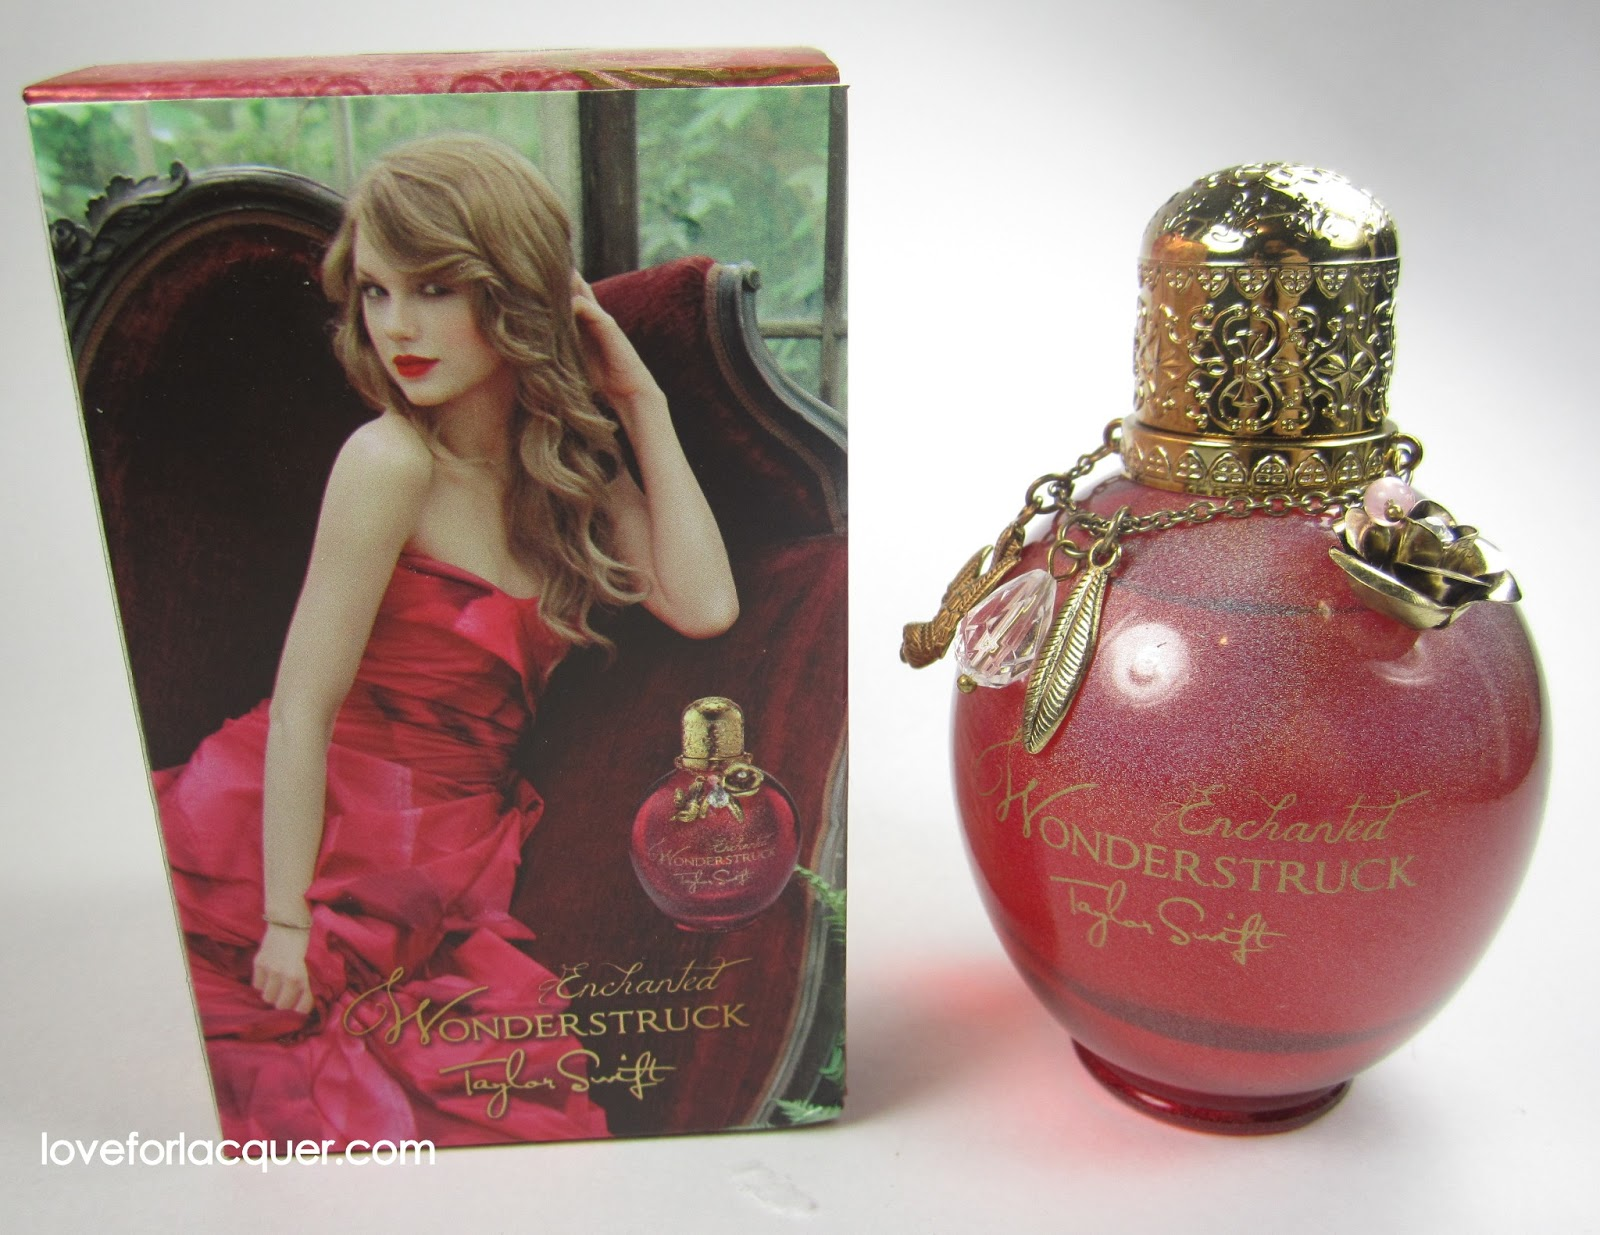 Taylor Swift Wonderstruck Enchanted Fragrance Review Love For Lacquer